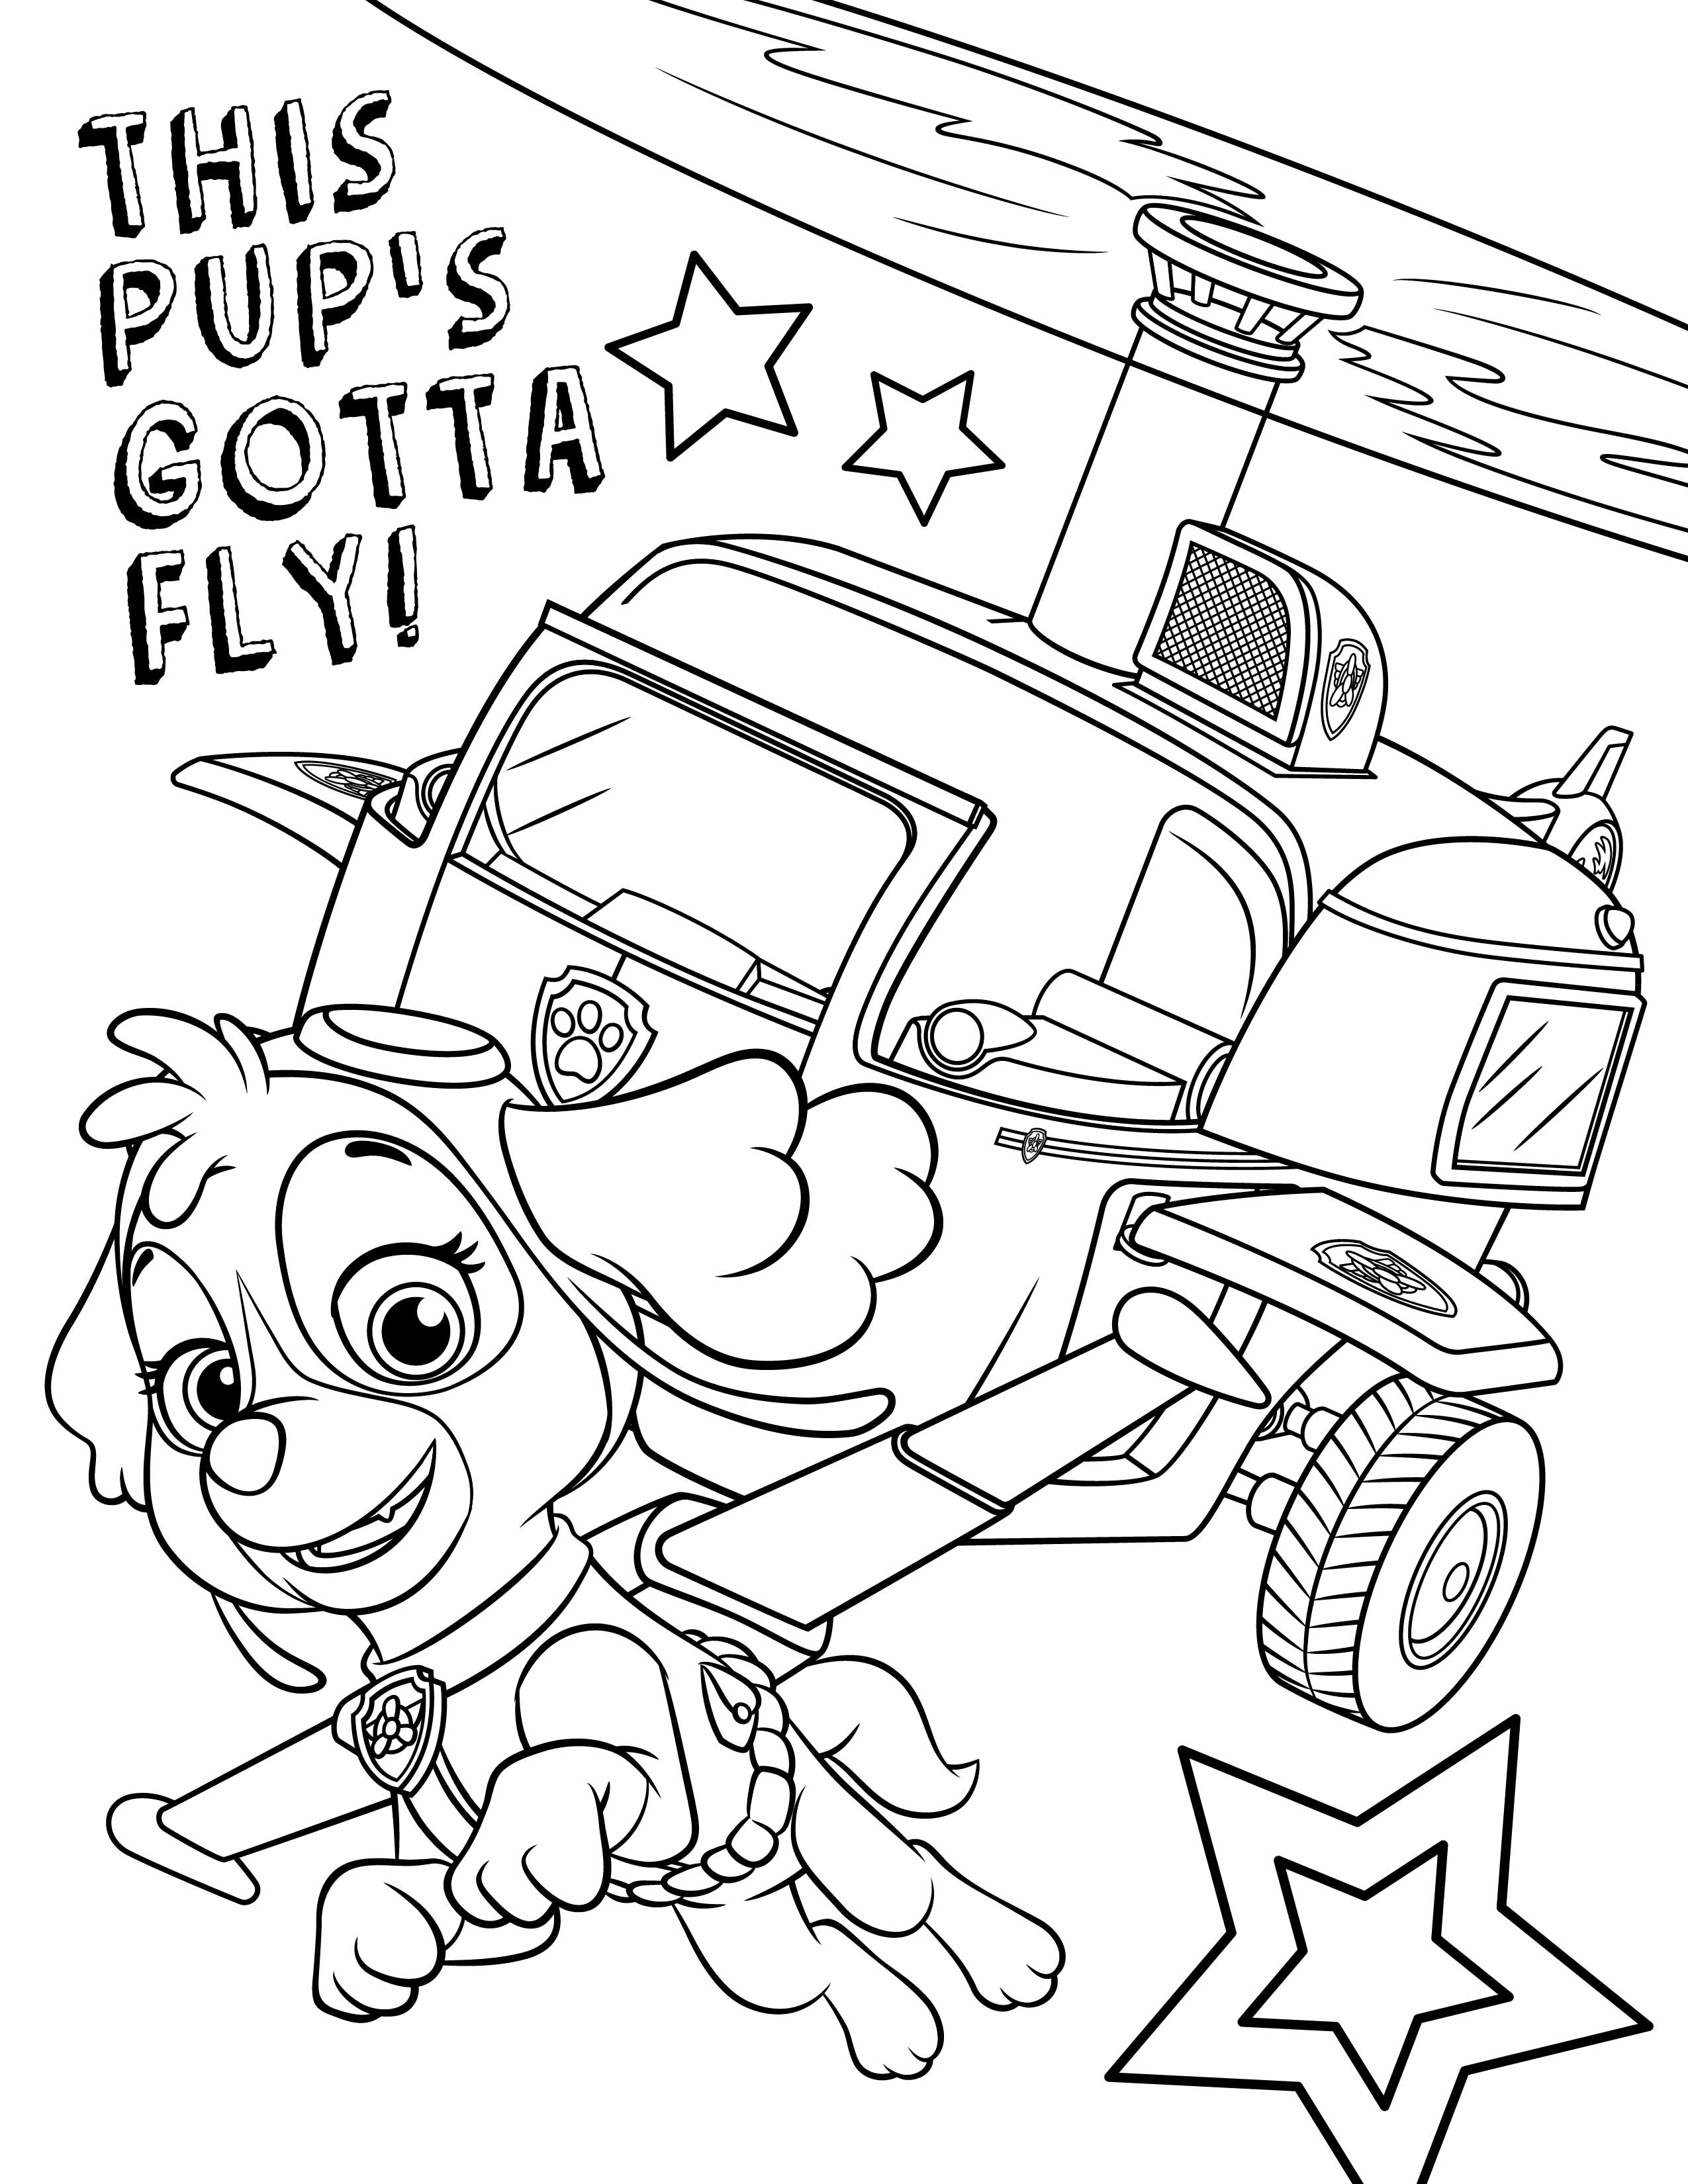 Coloring Pages : Pawpatrolcoloringpages_Skye Zuma Paw Patrol - Free Printable Paw Patrol Coloring Pages